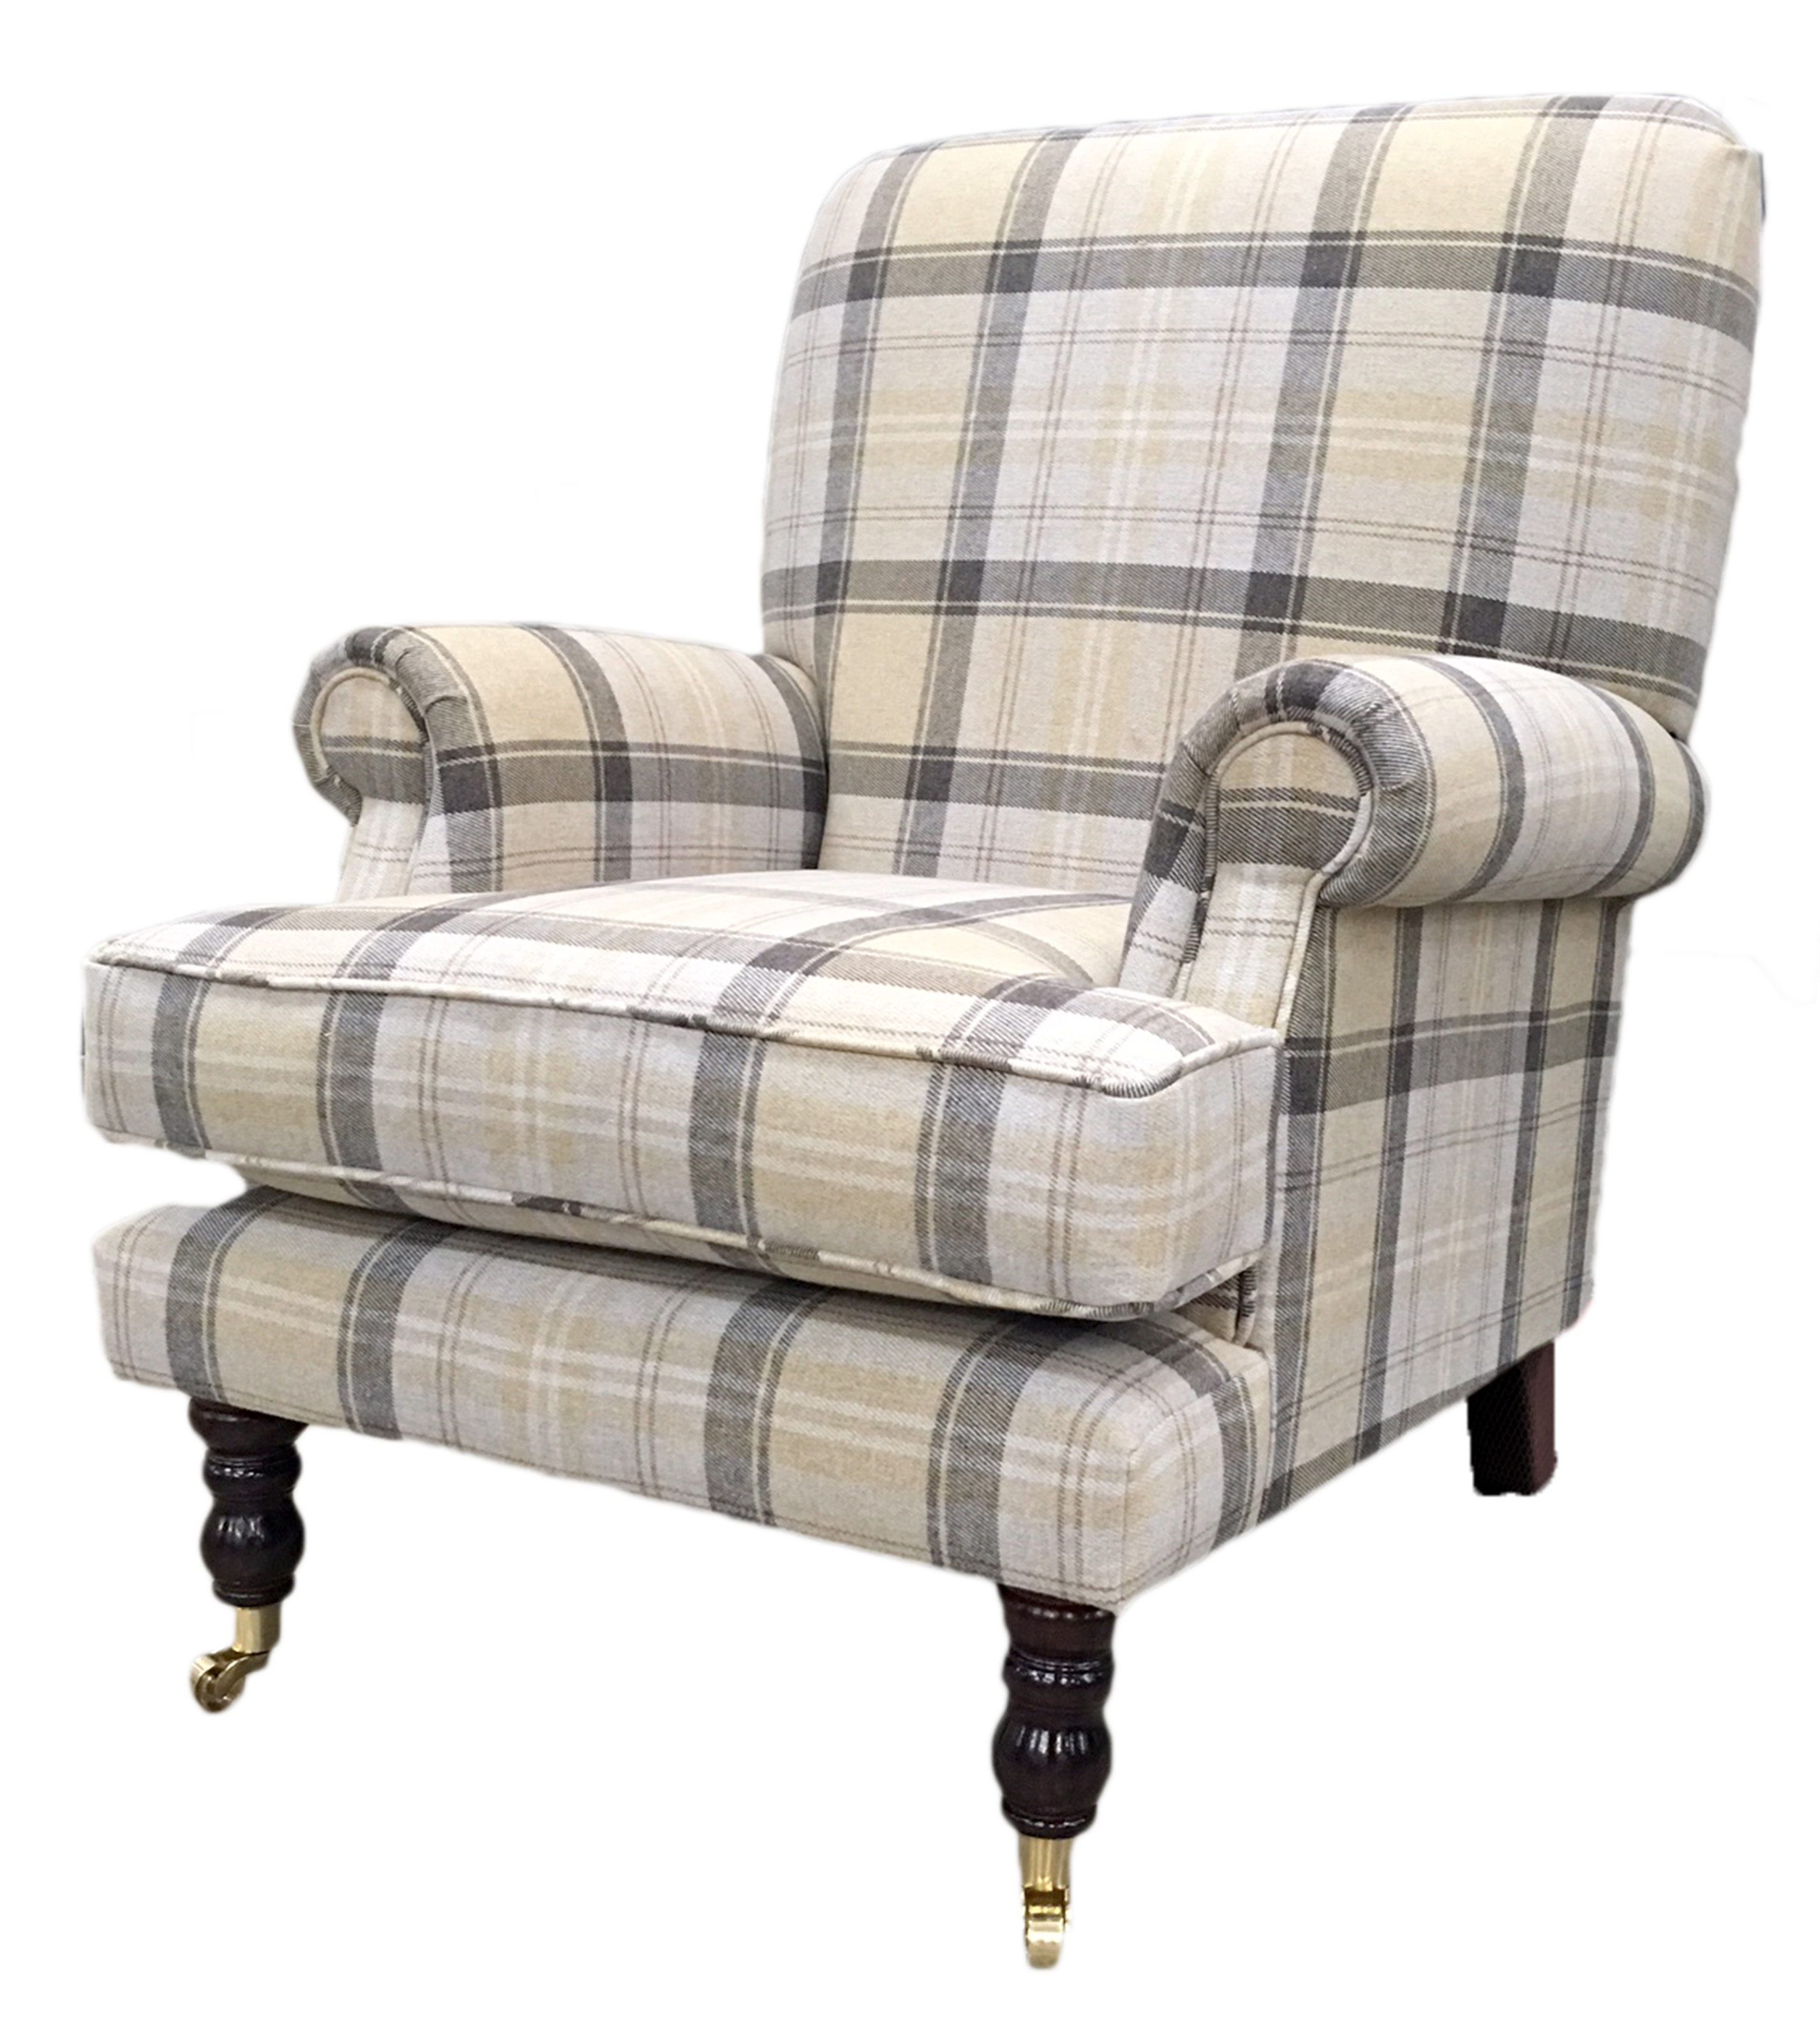 Cleary-Aviemore-Plaid-Chocolate-Silver-Collection-side